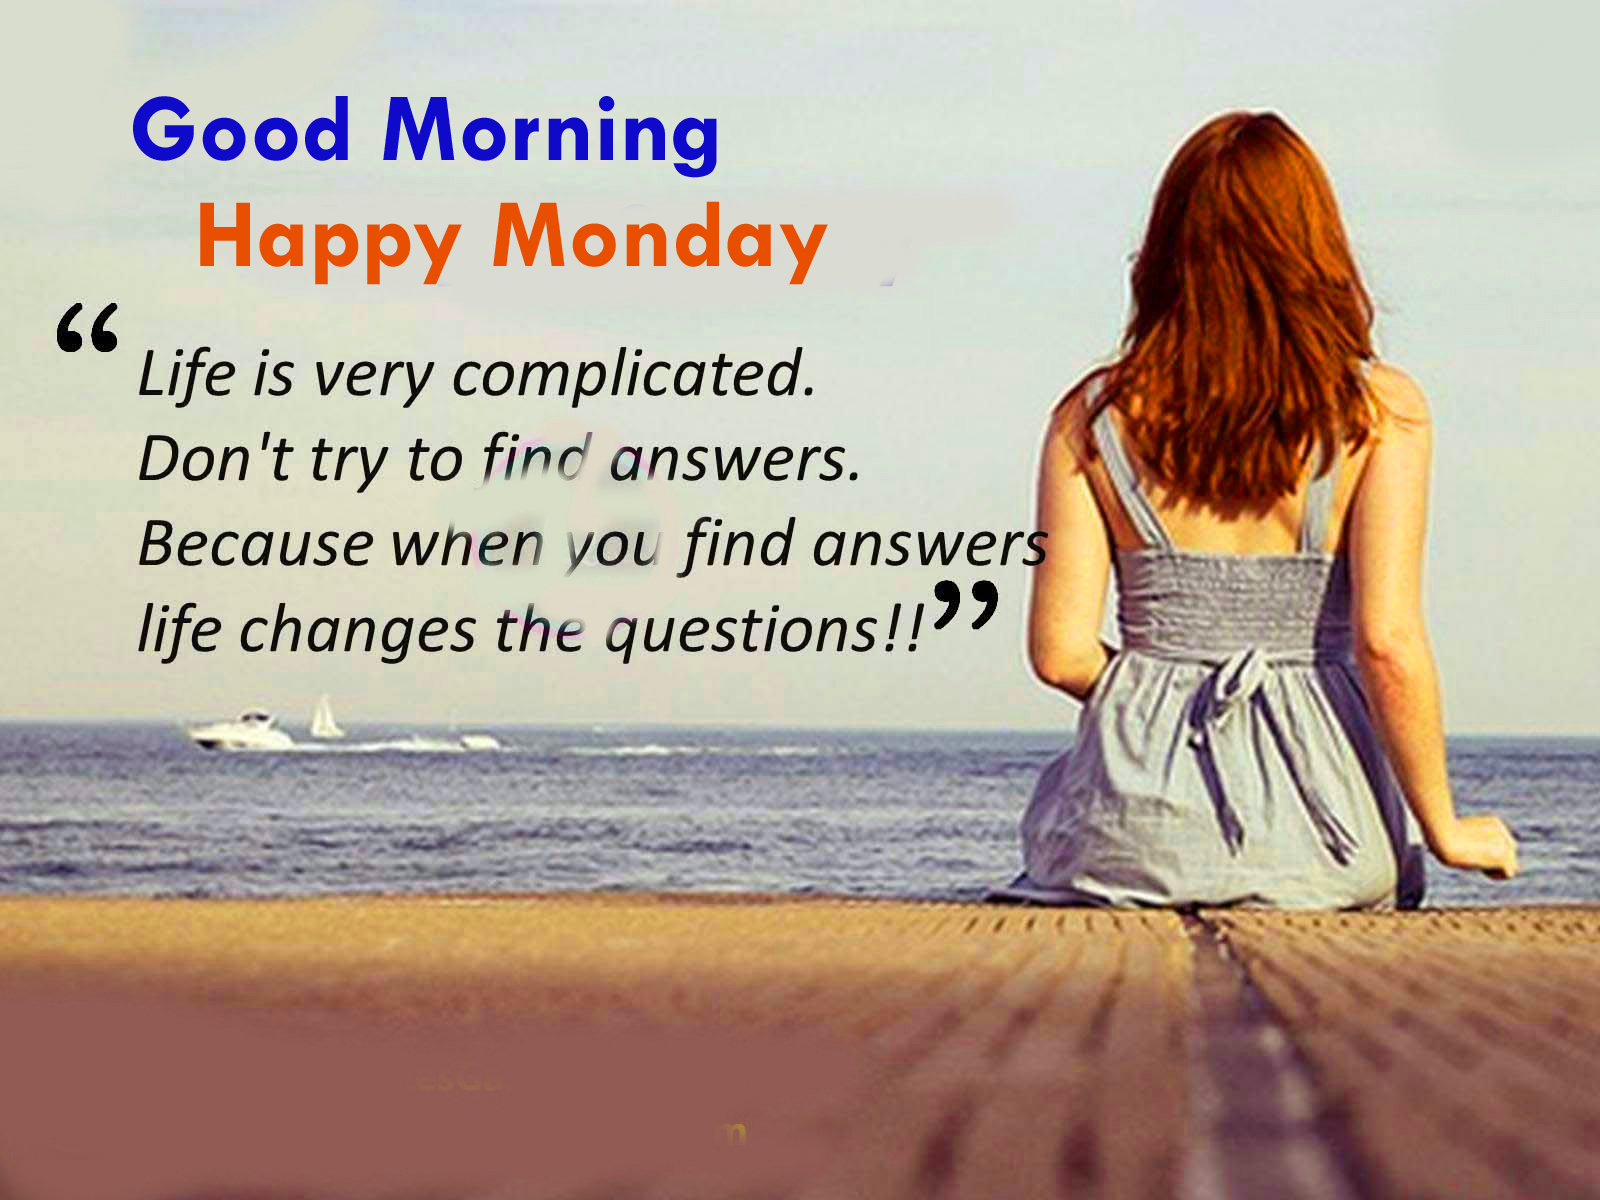 213 good morning happy monday wishes quotes images download goodmornignmondayhd voltagebd Gallery